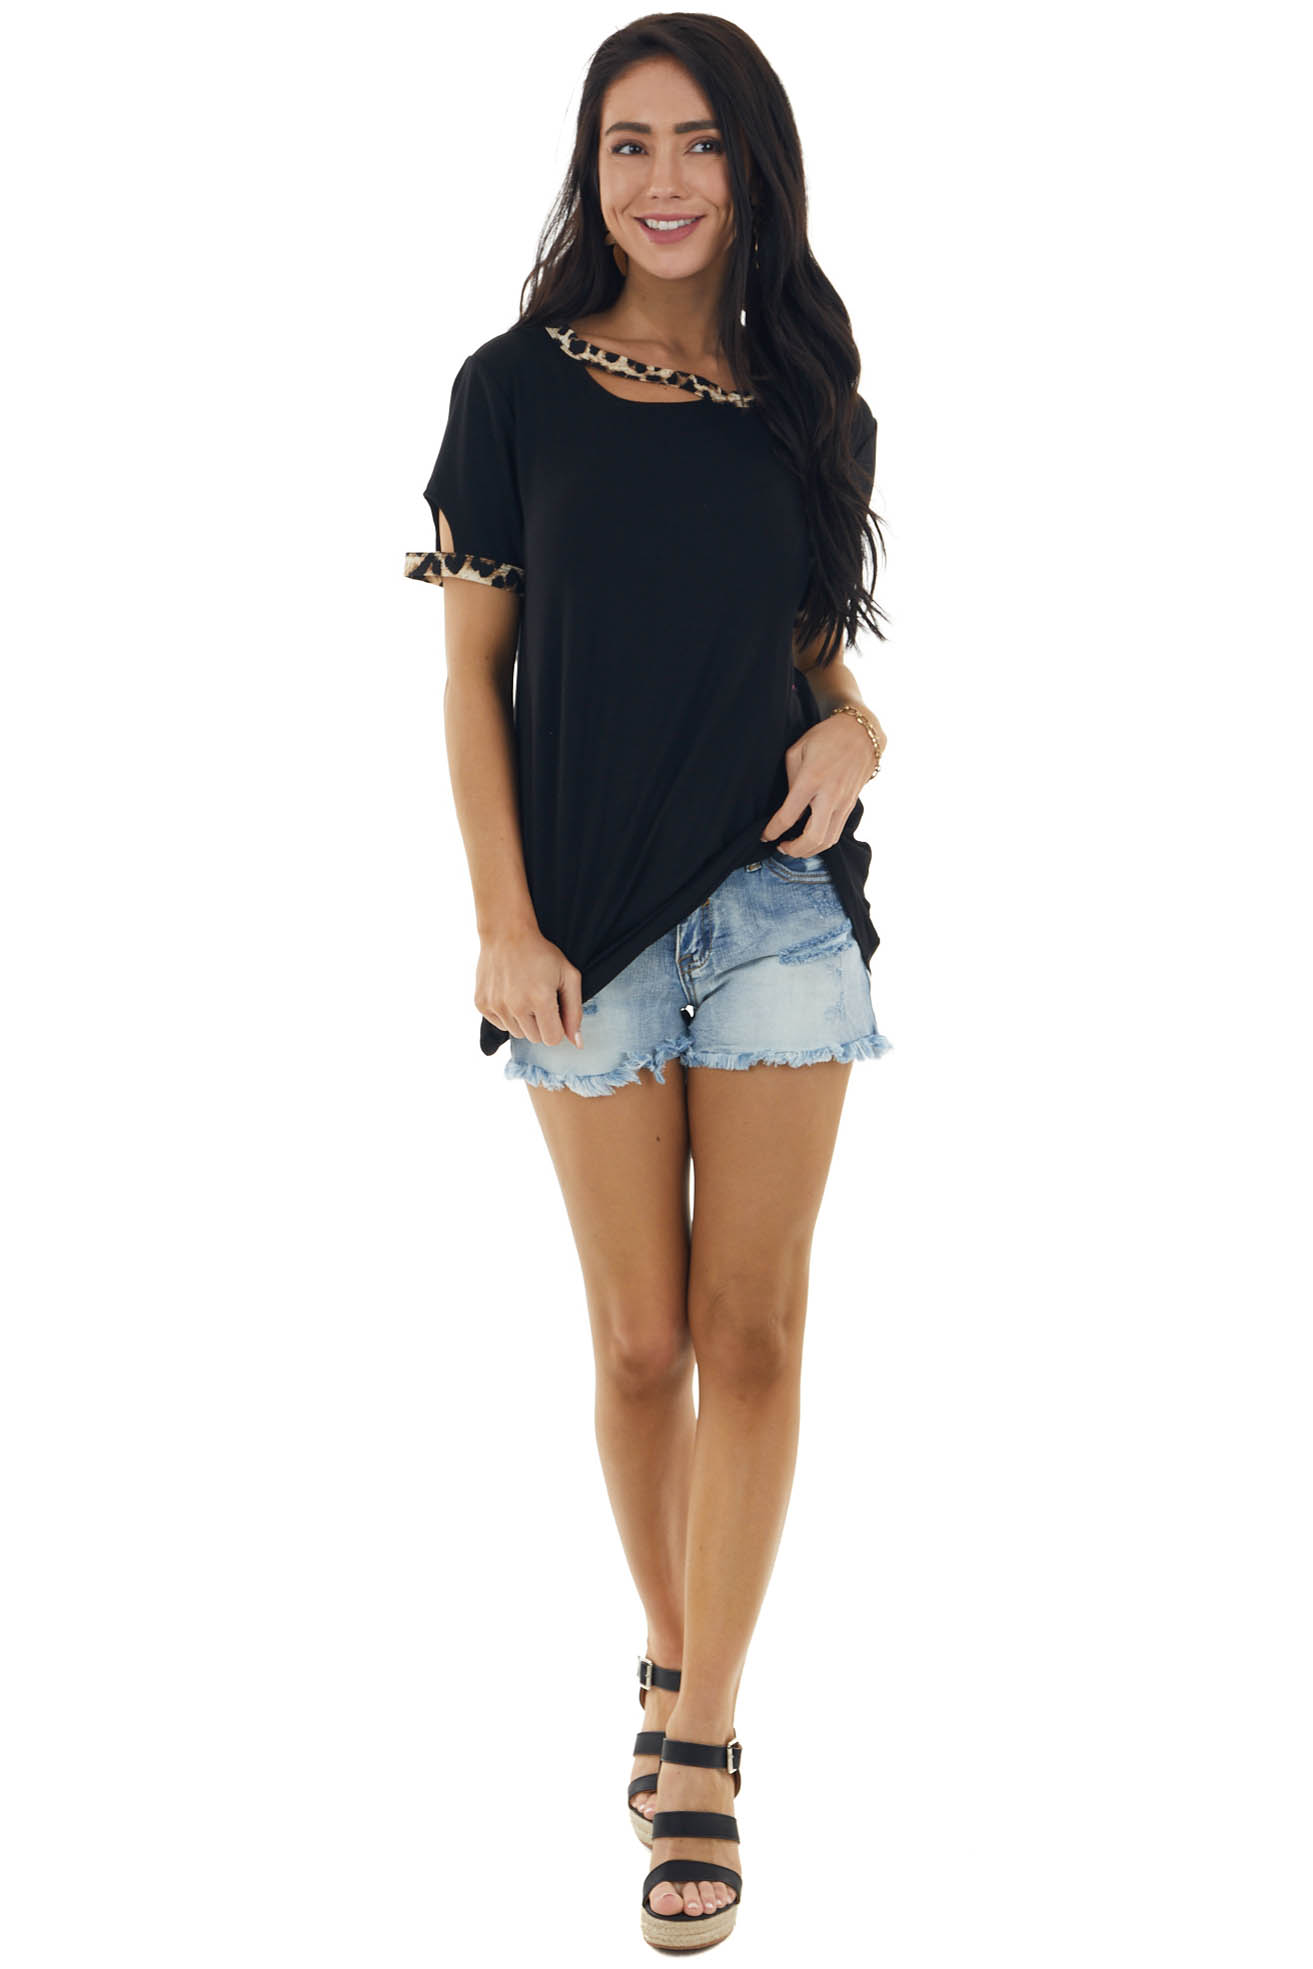 Black Cut Out Stretchy Knit Tee with Leopard Print Trim